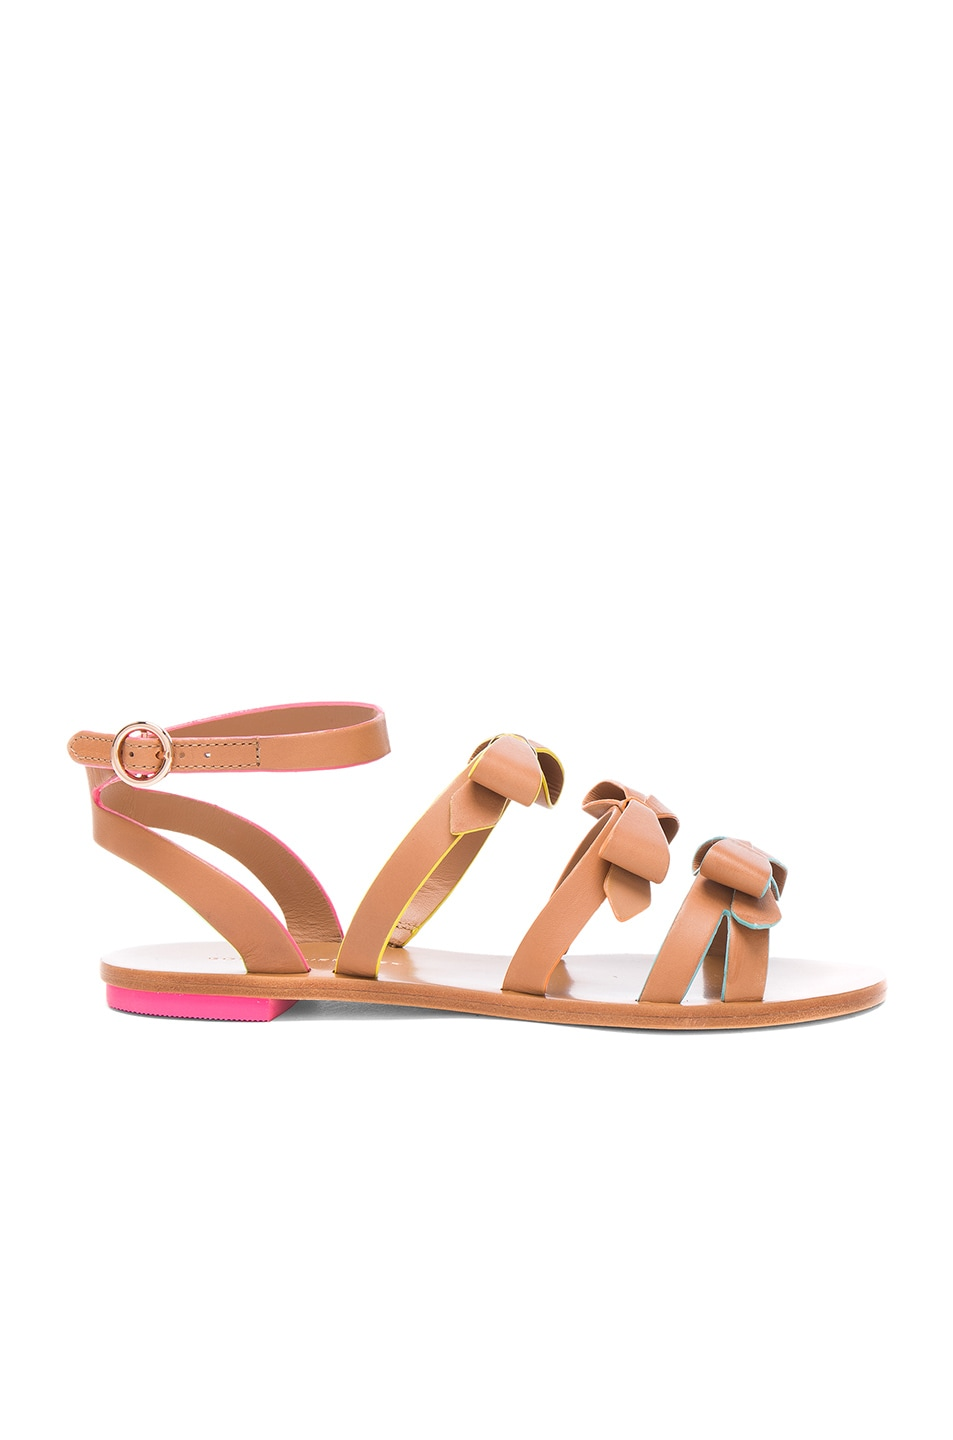 Image 1 of Sophia Webster Leather Samara Flat Sandals in Tan